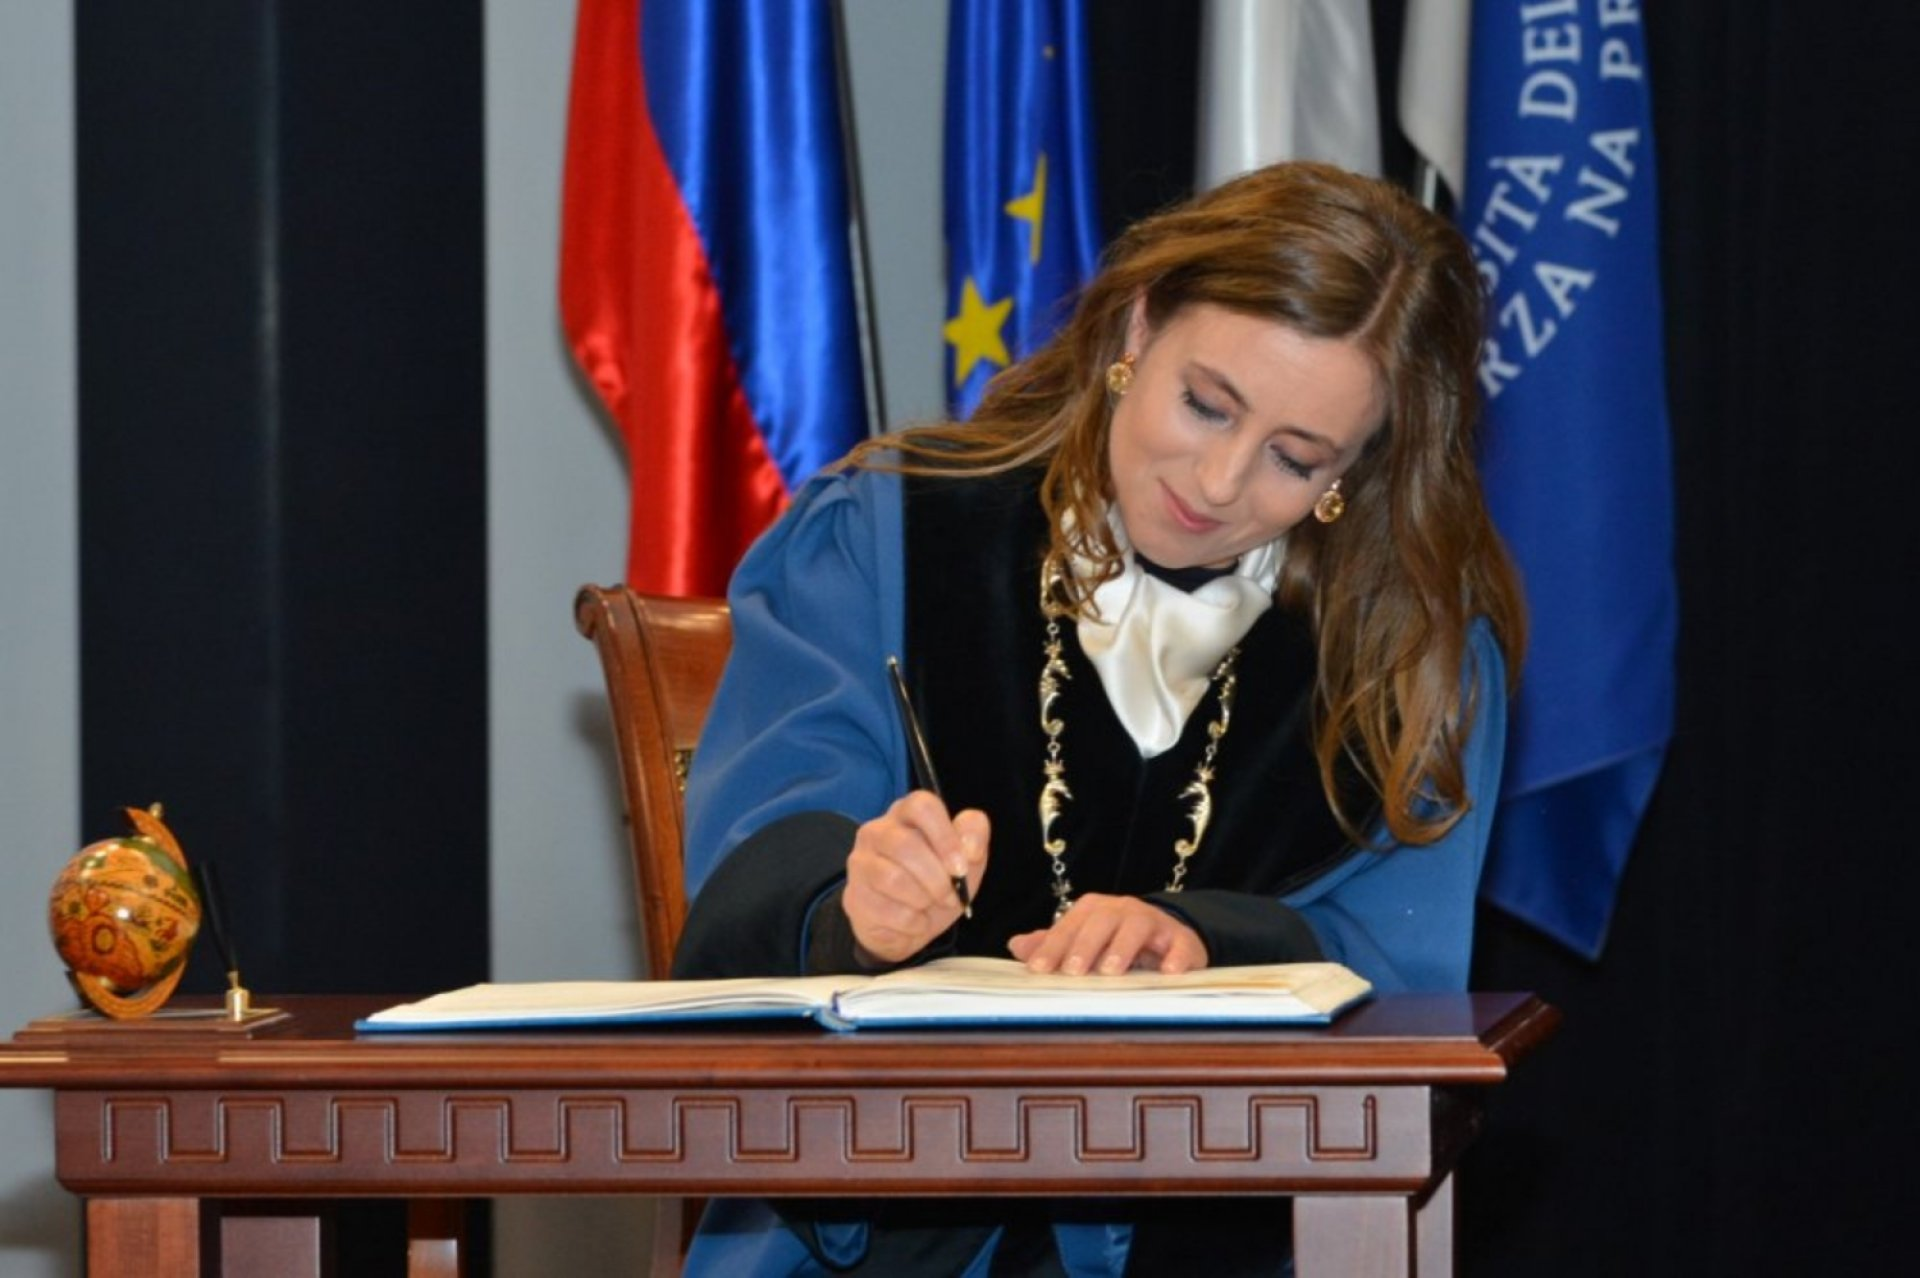 New Rector at the University of Primorska has sworn and took up her duties